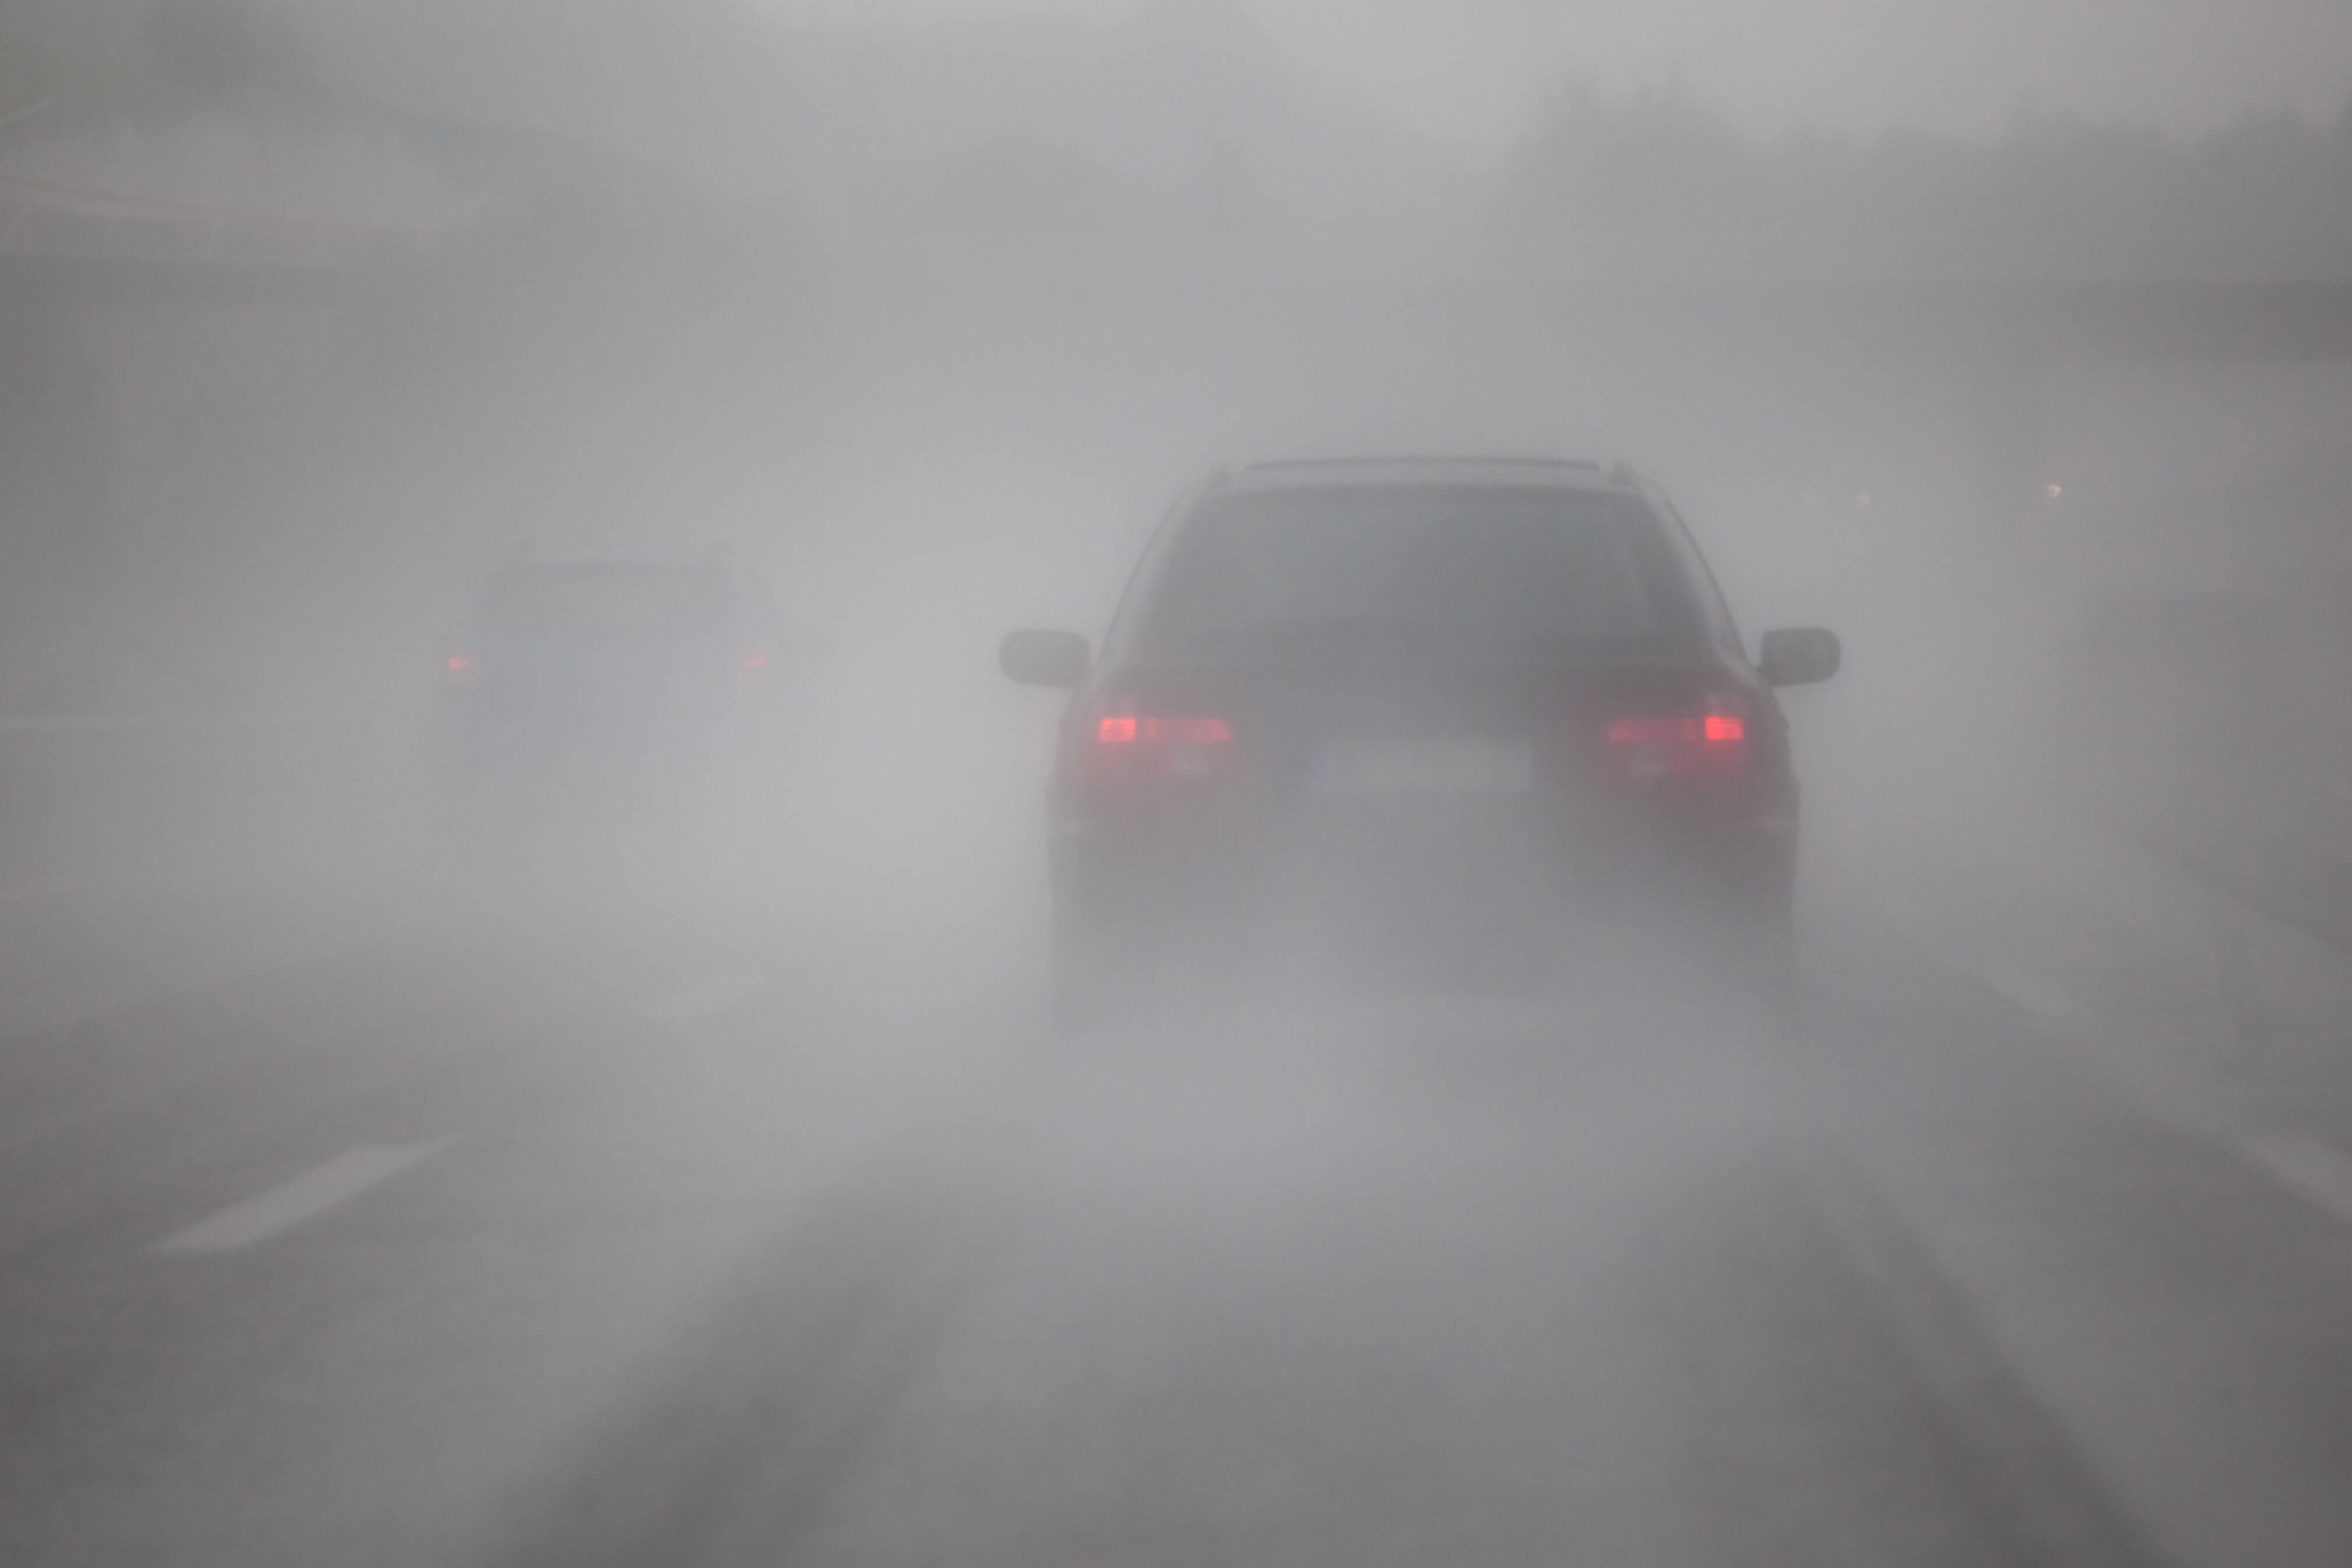 Staying alert and always driving to the conditions will ensure getting to your destination safely.